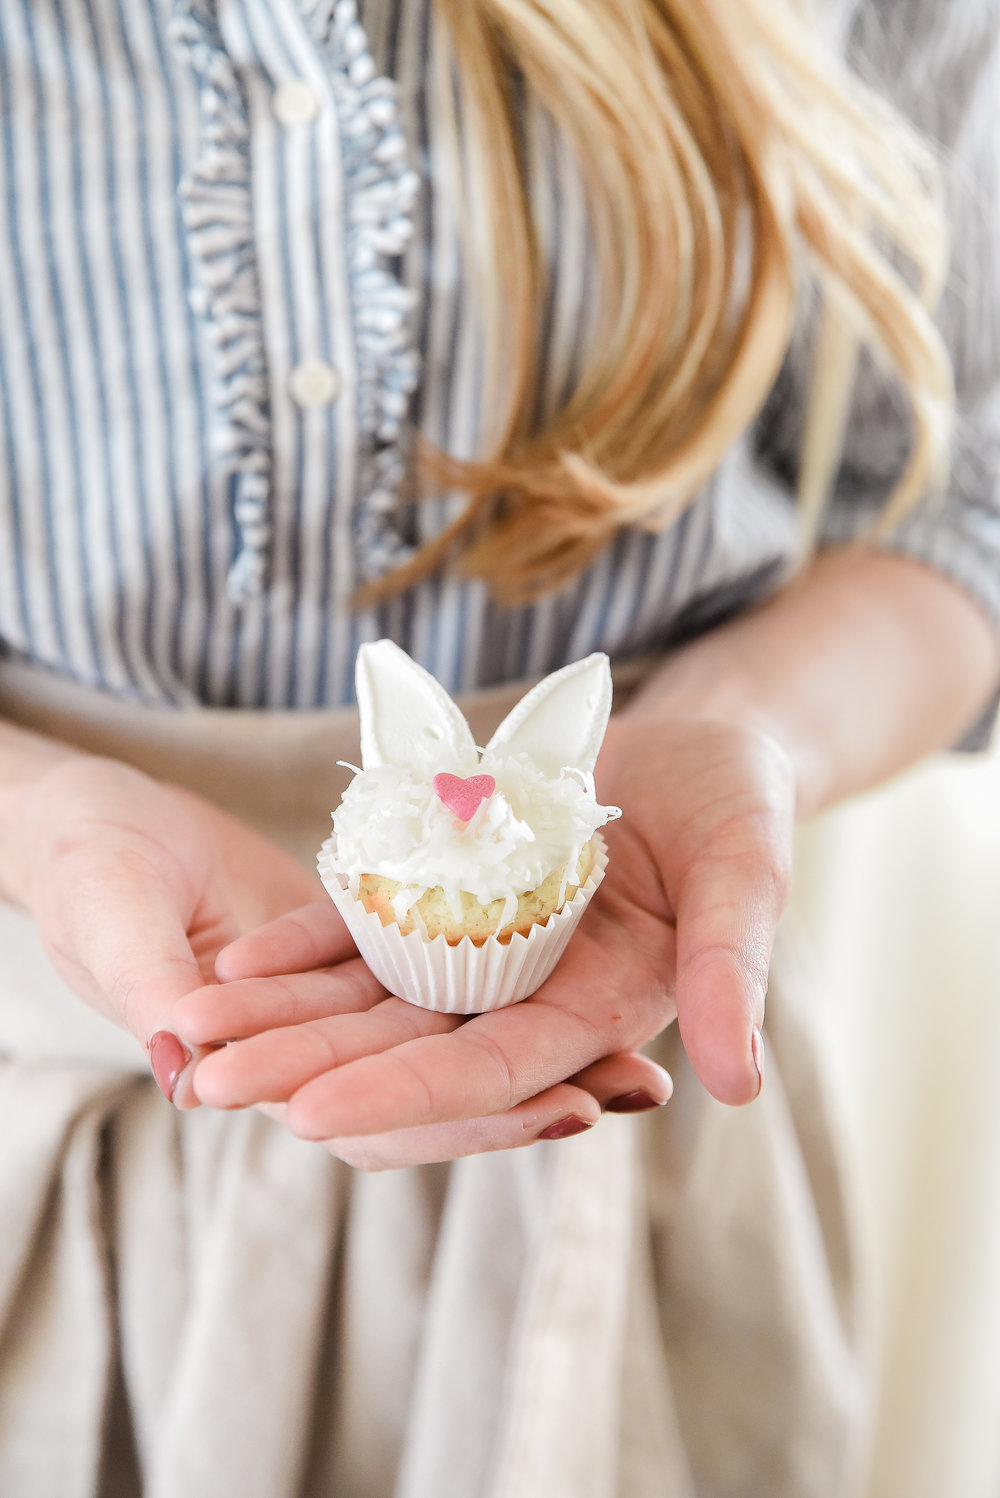 The sweetest Easter dessert idea! Easter bunny sugar cookies! Sugar cookies filled with a light and fluffy cream cheese frosting, topped with shredded coconut, and marshmallow bunny ears! boxwoodavenue.com #easterdessert #eastersugarcookies #easterbunnycookies